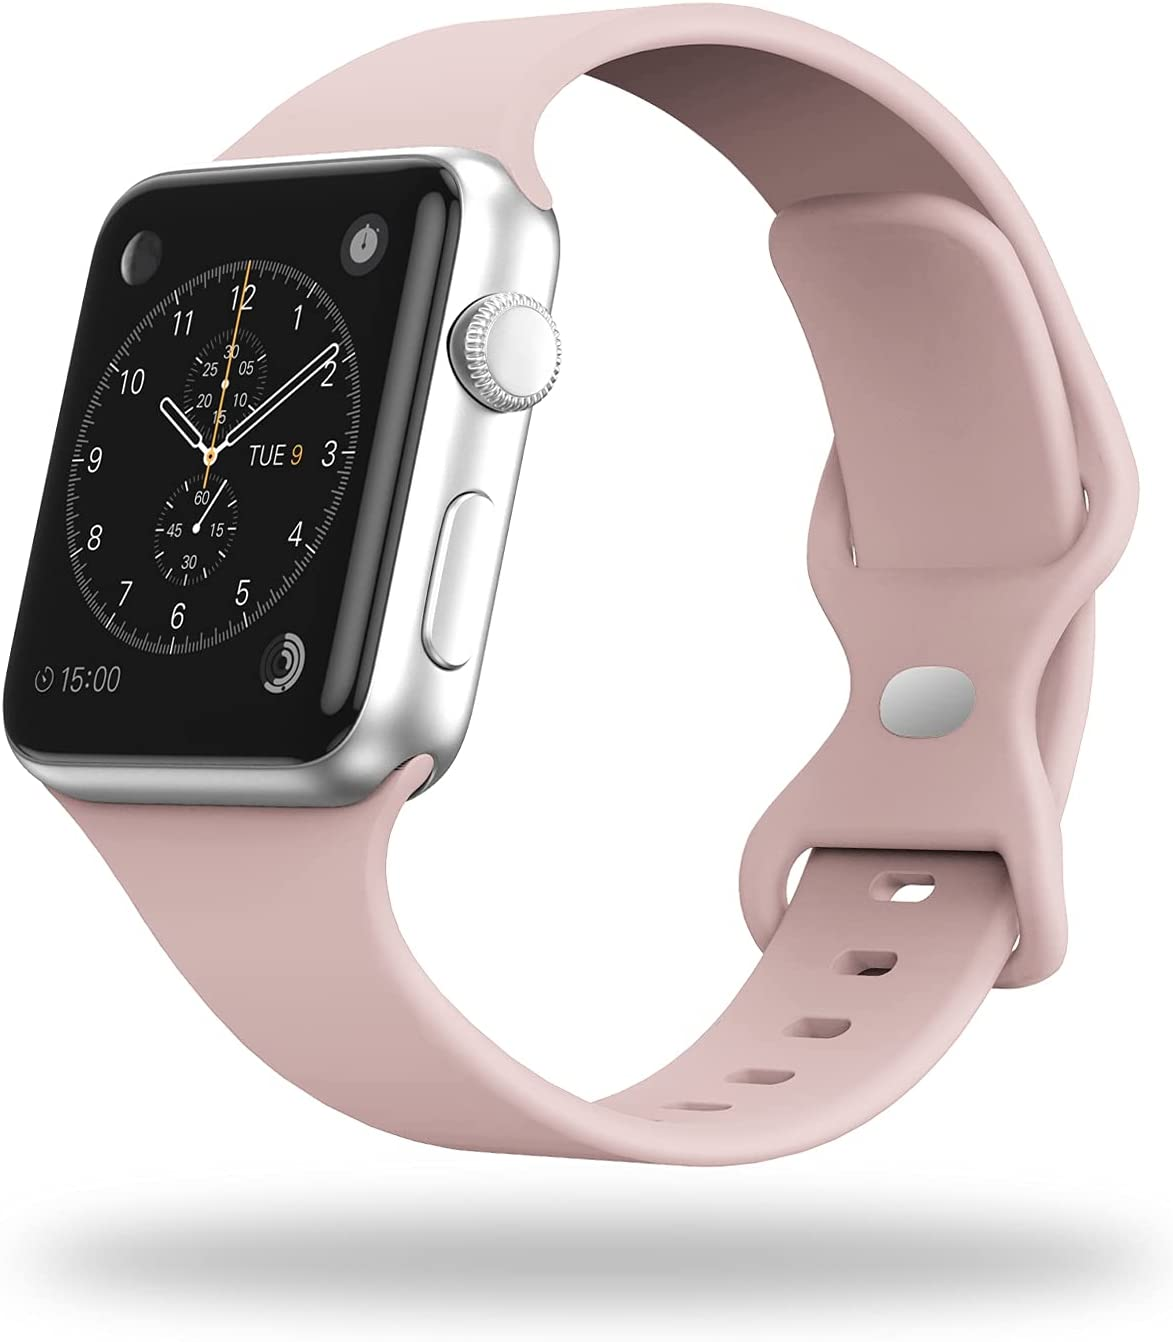 STG Smart Watch Band Compatible with Apple Watch Band 38mm 40mm 42mm 44mm, Soft Silicone Replacement Sport Strap Compatible for iWatch SE Series 6/5/4/3/2/1 (42/44mm, Pink Sand)